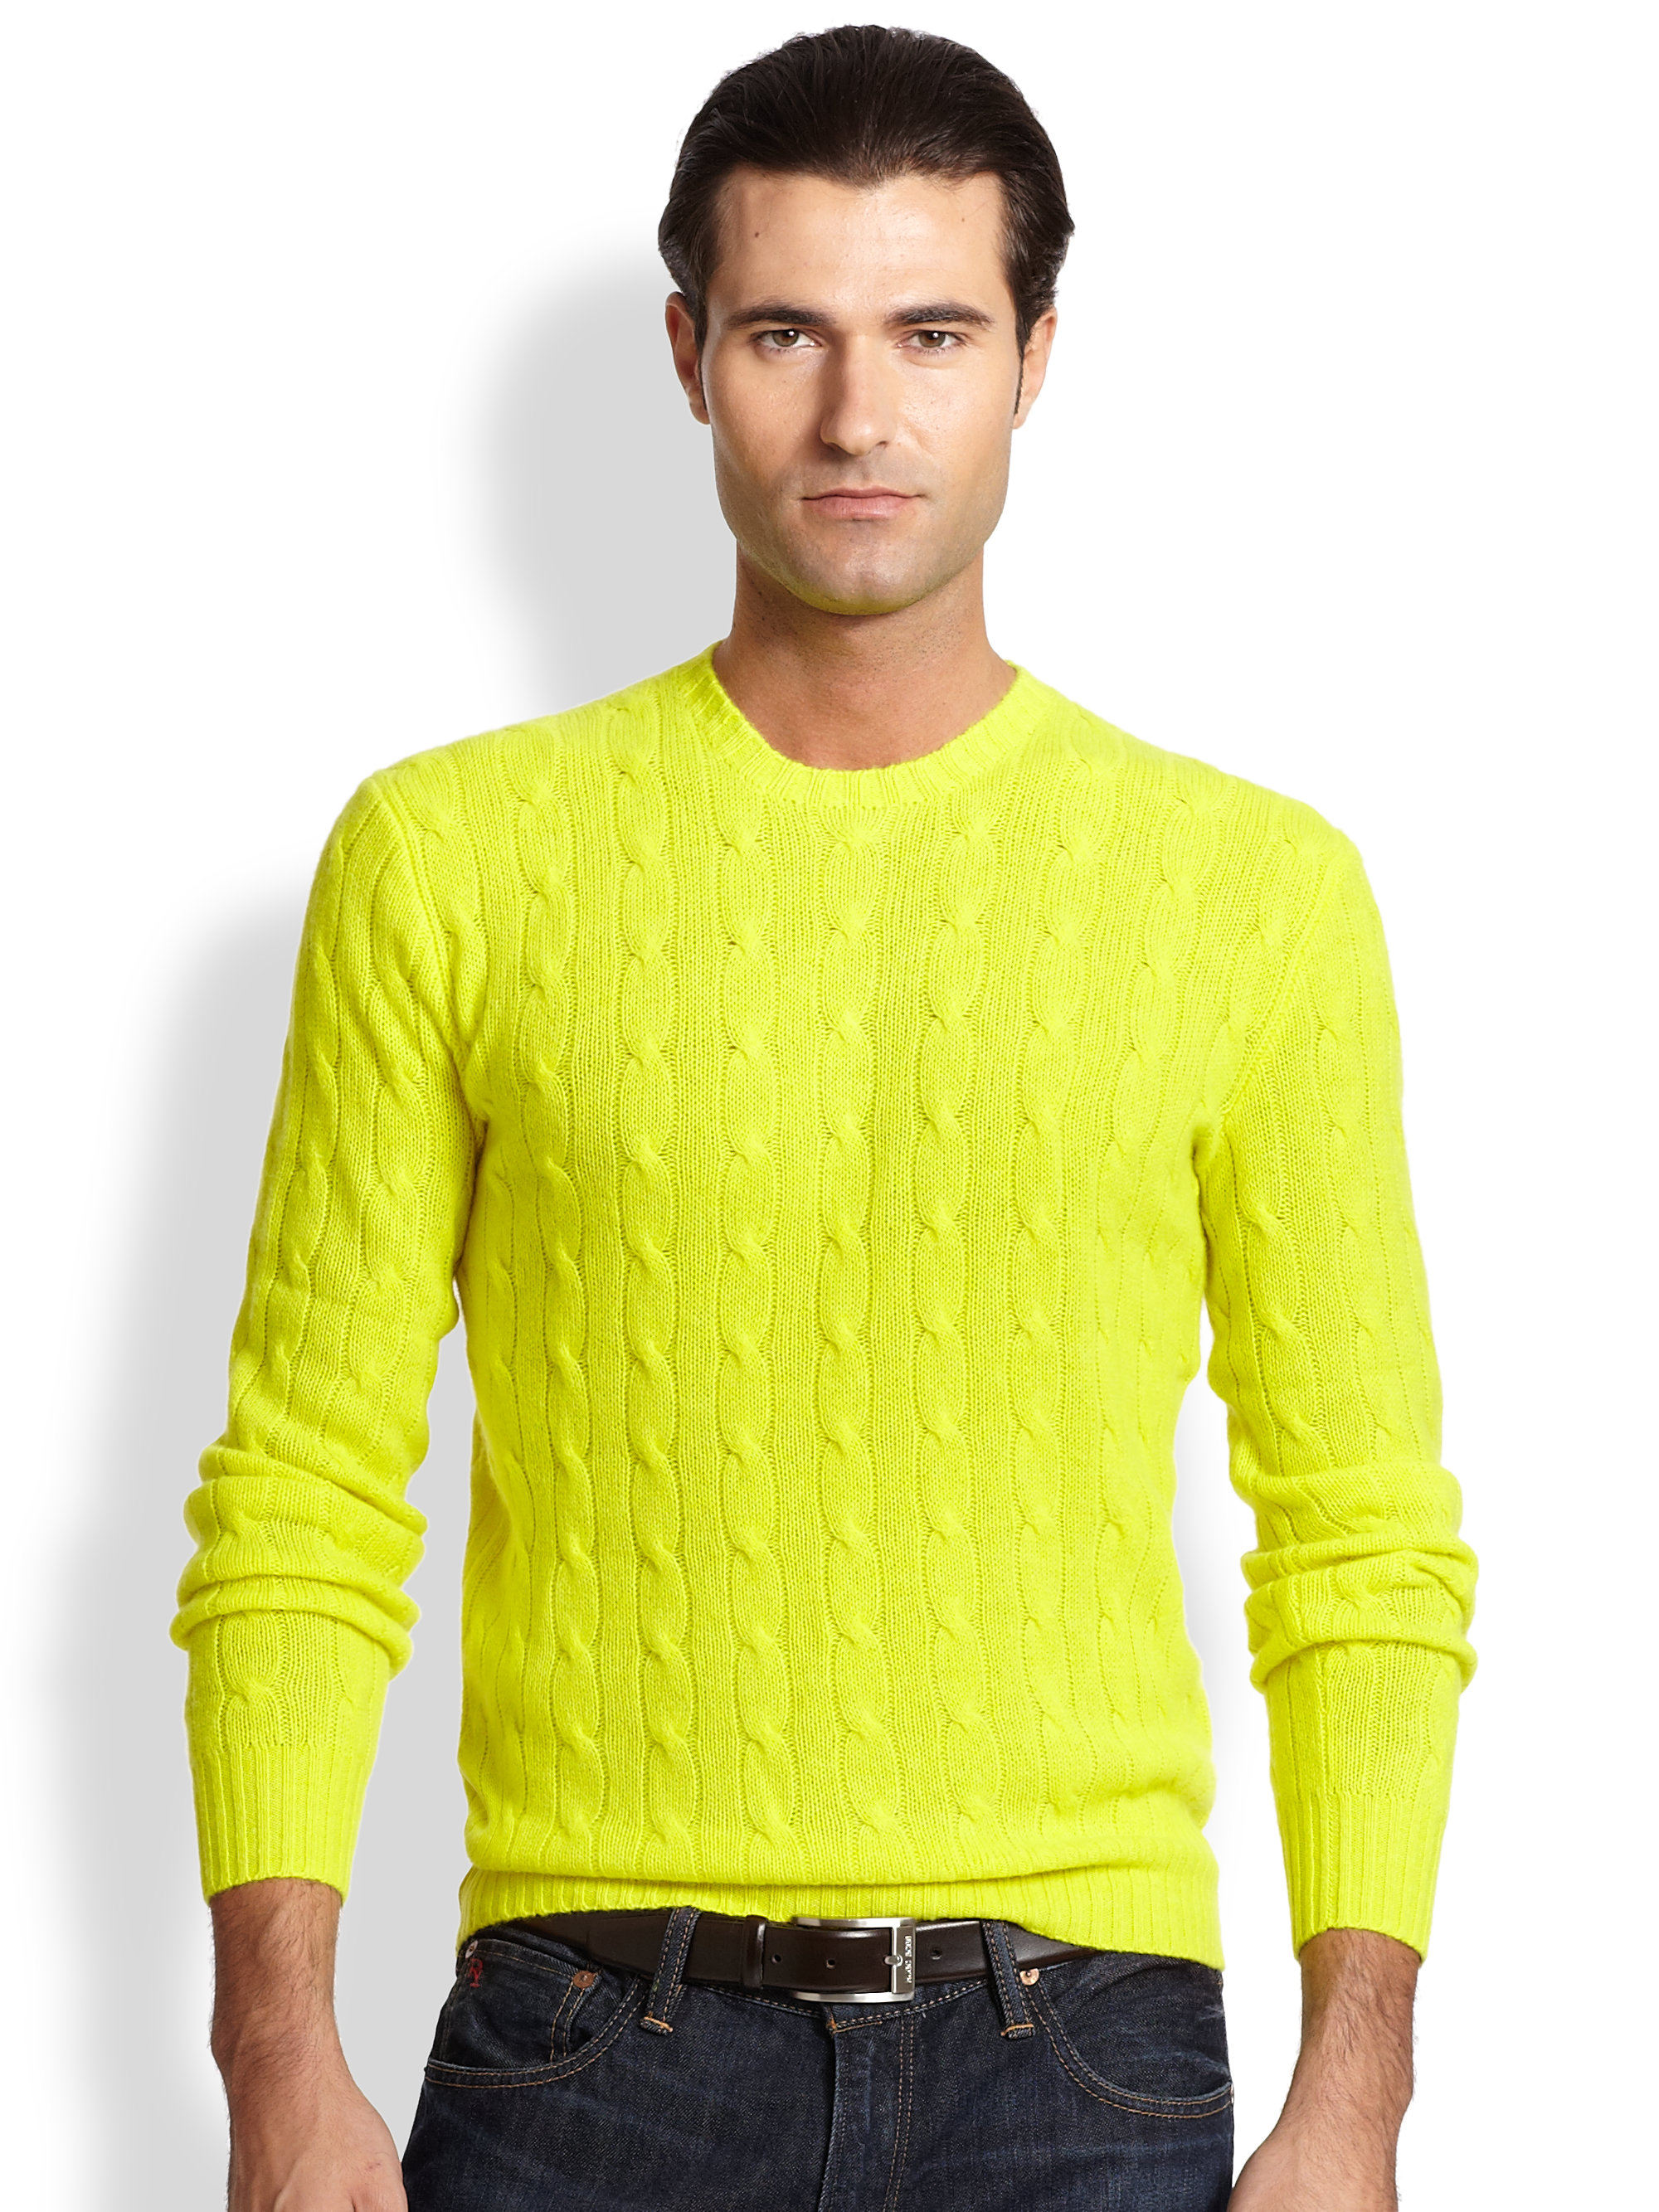 13b4dea9097 Lyst - Polo Ralph Lauren Cable-knit Cashmere Sweater in Yellow for Men